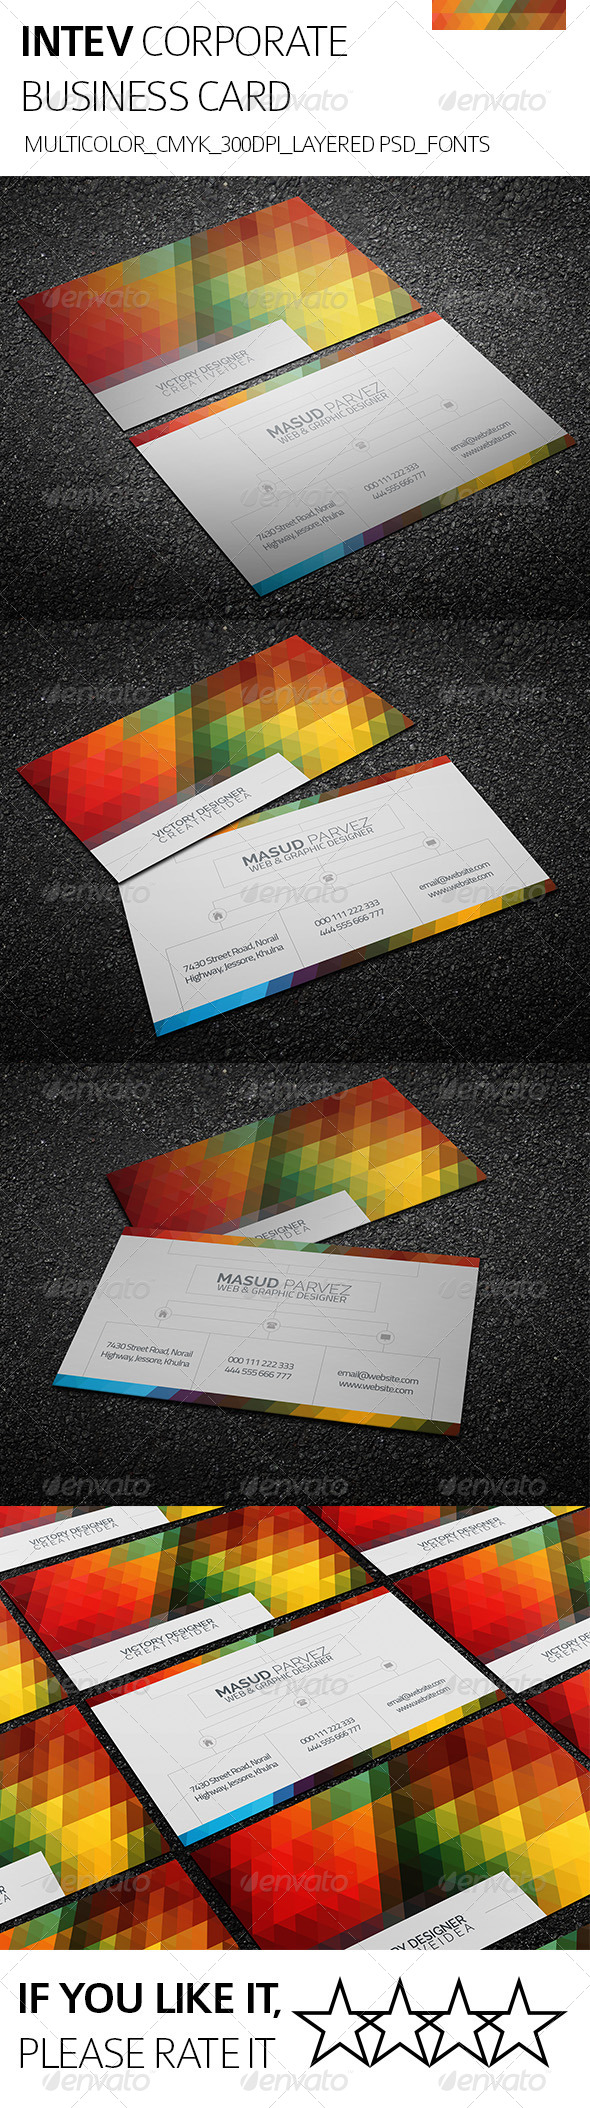 GraphicRiver Intev & Corporate Business Card 8560913